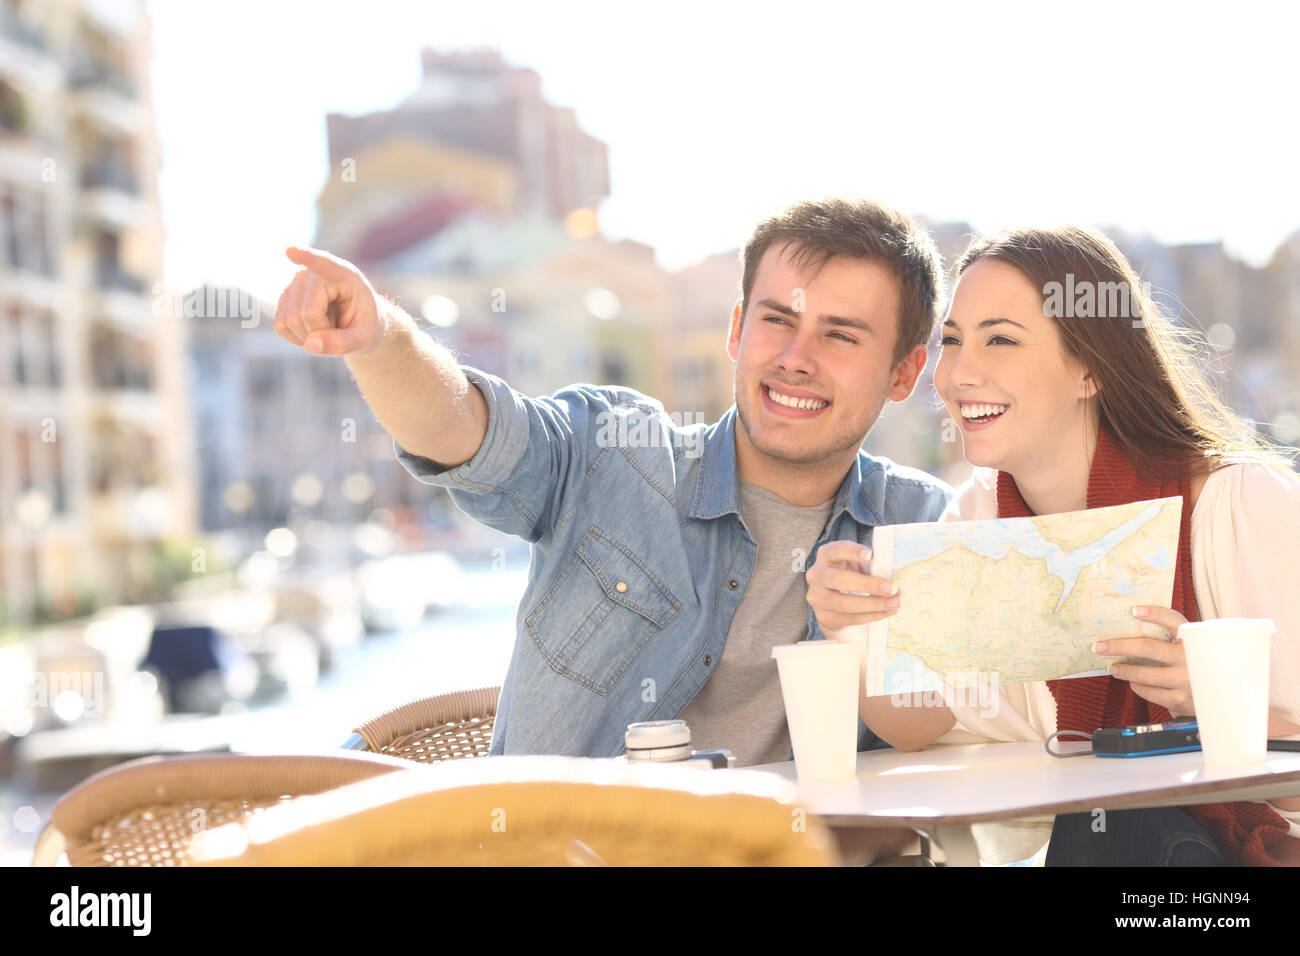 Couple of tourists searching location siting in an hotel terrace during a summer travel with a port in the background - Stock Image